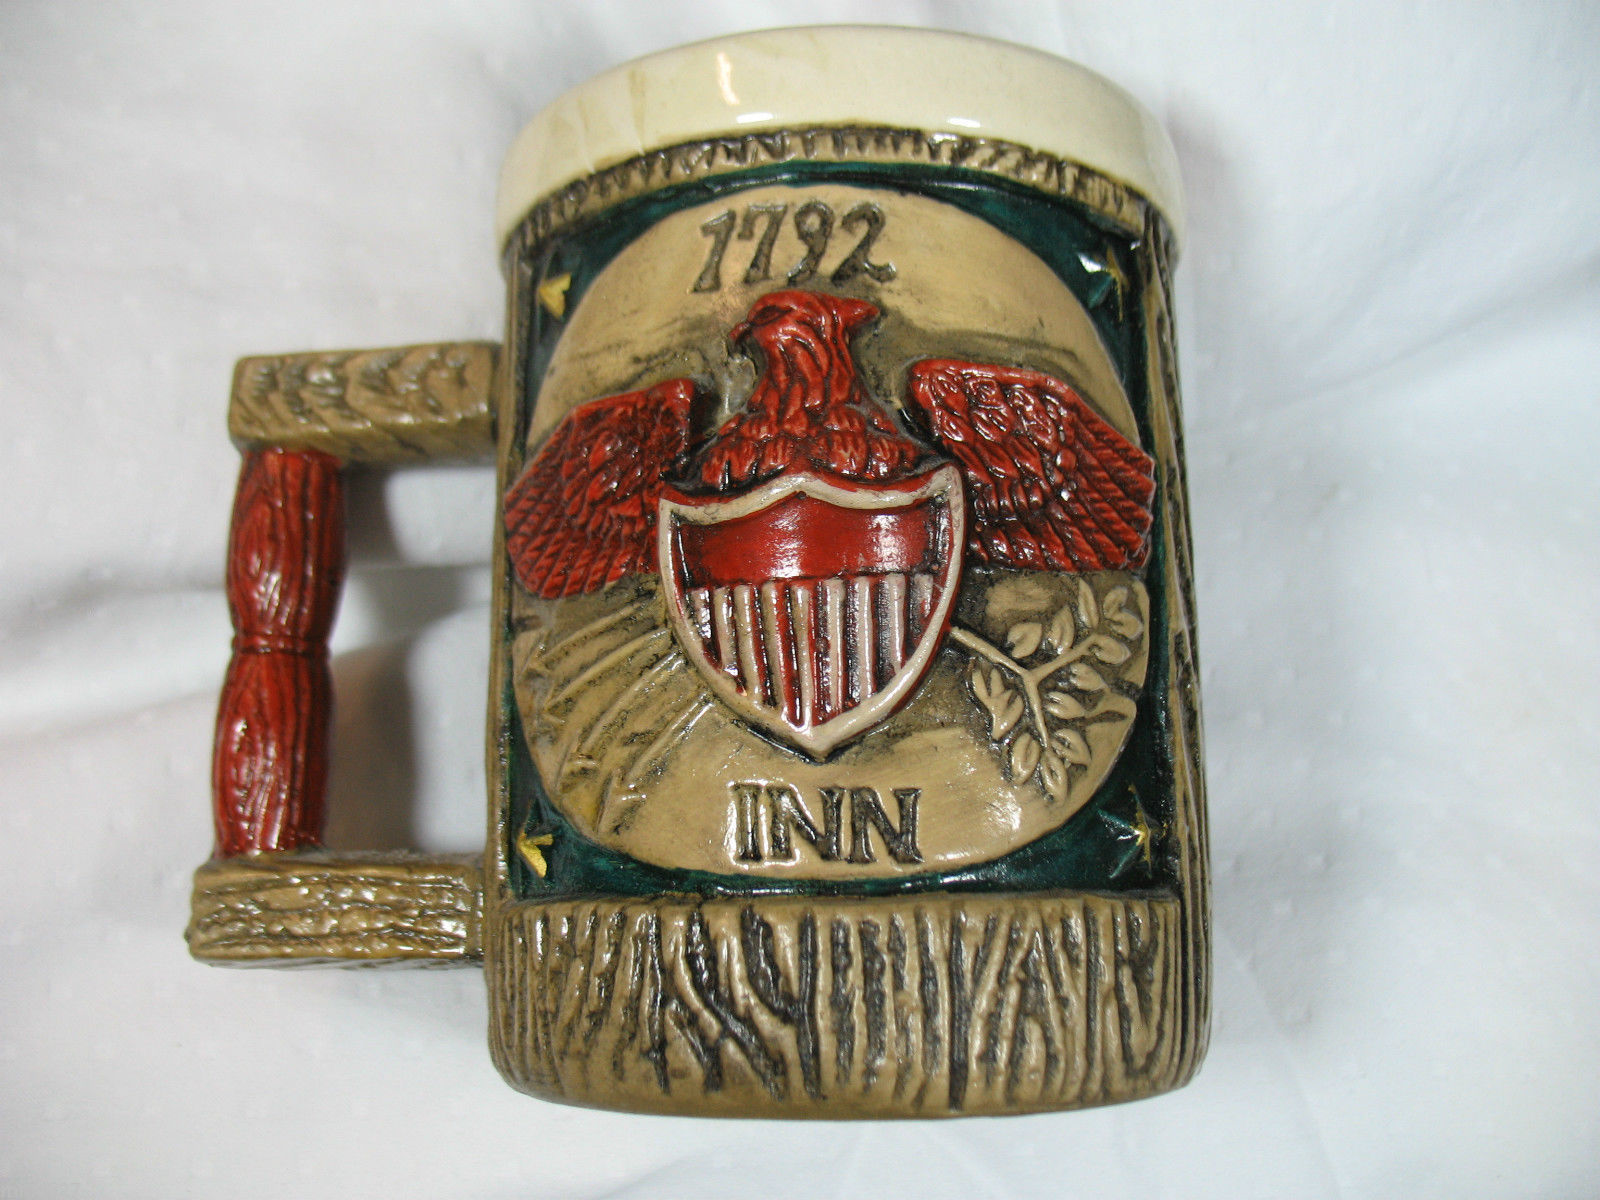 Napcoware 1792 Inn Coffee Mug National Pottery Number C6728 Ceramic Collectible